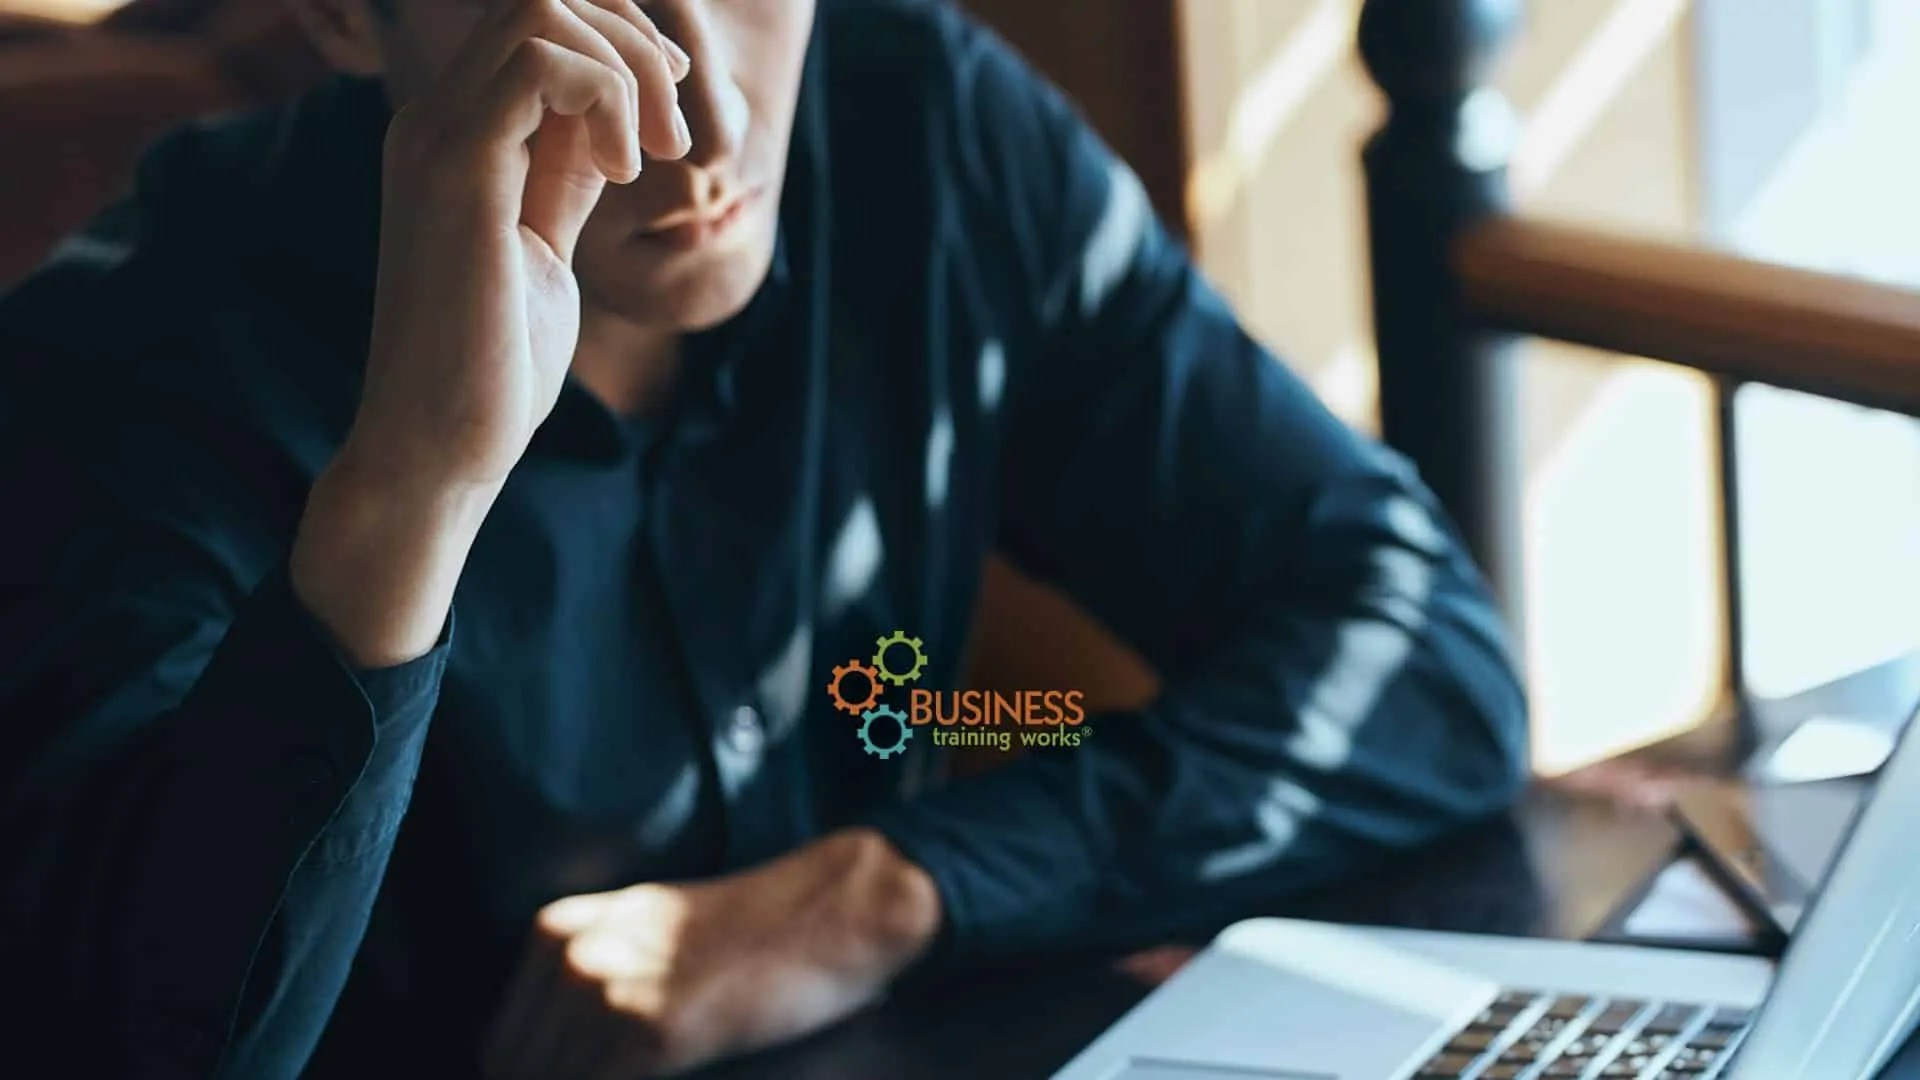 Business Training Works